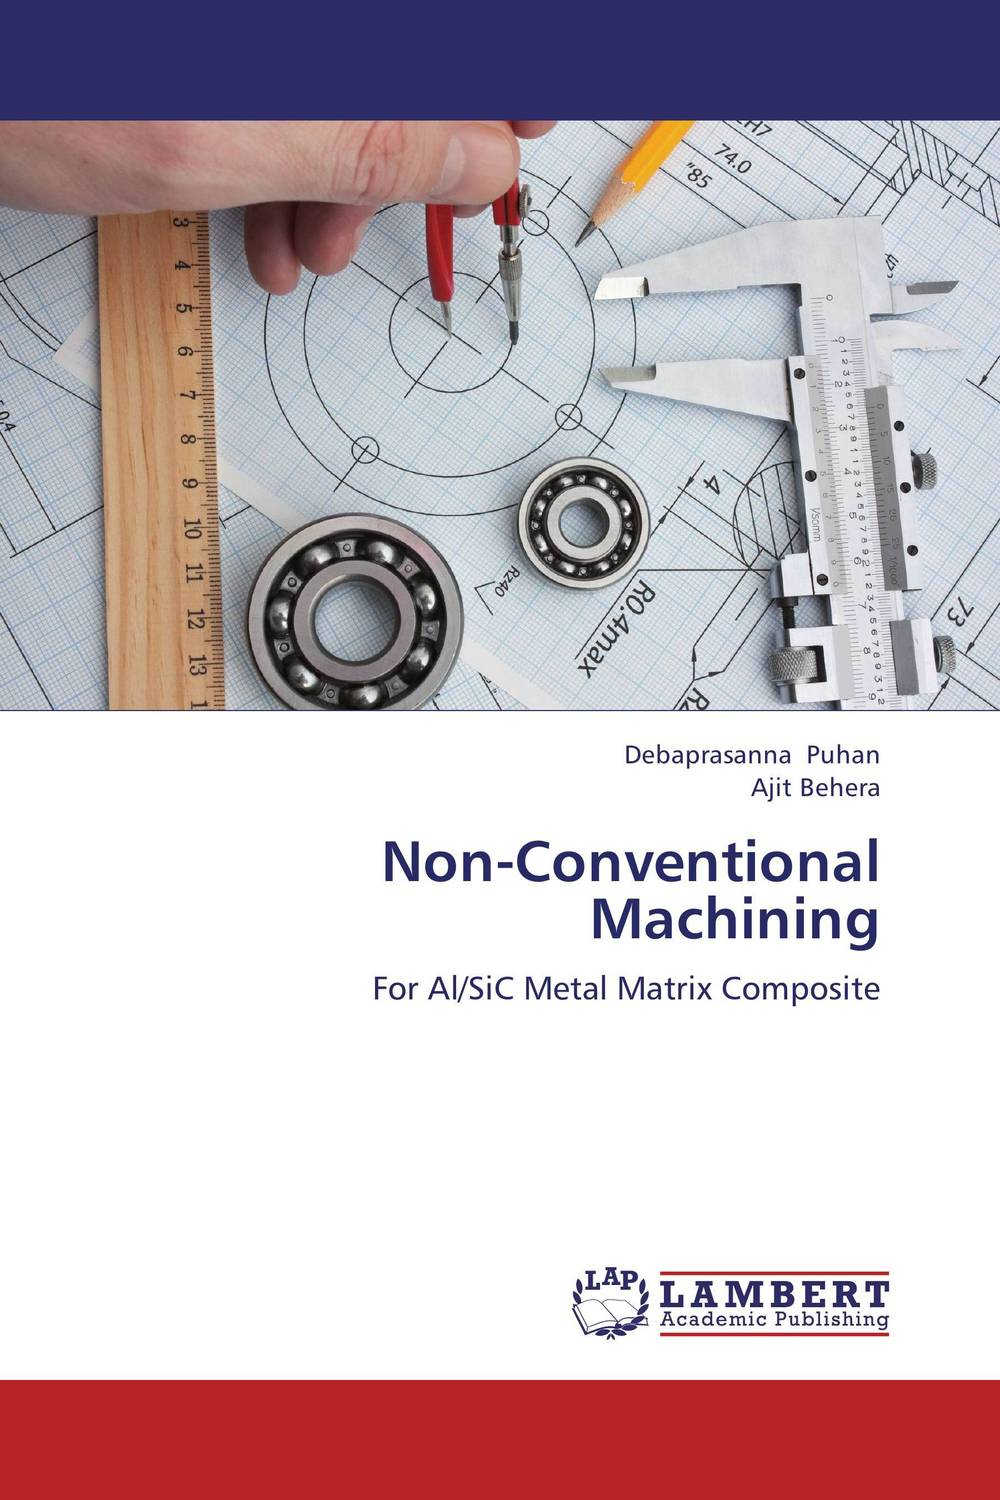 Non-Conventional Machining formability